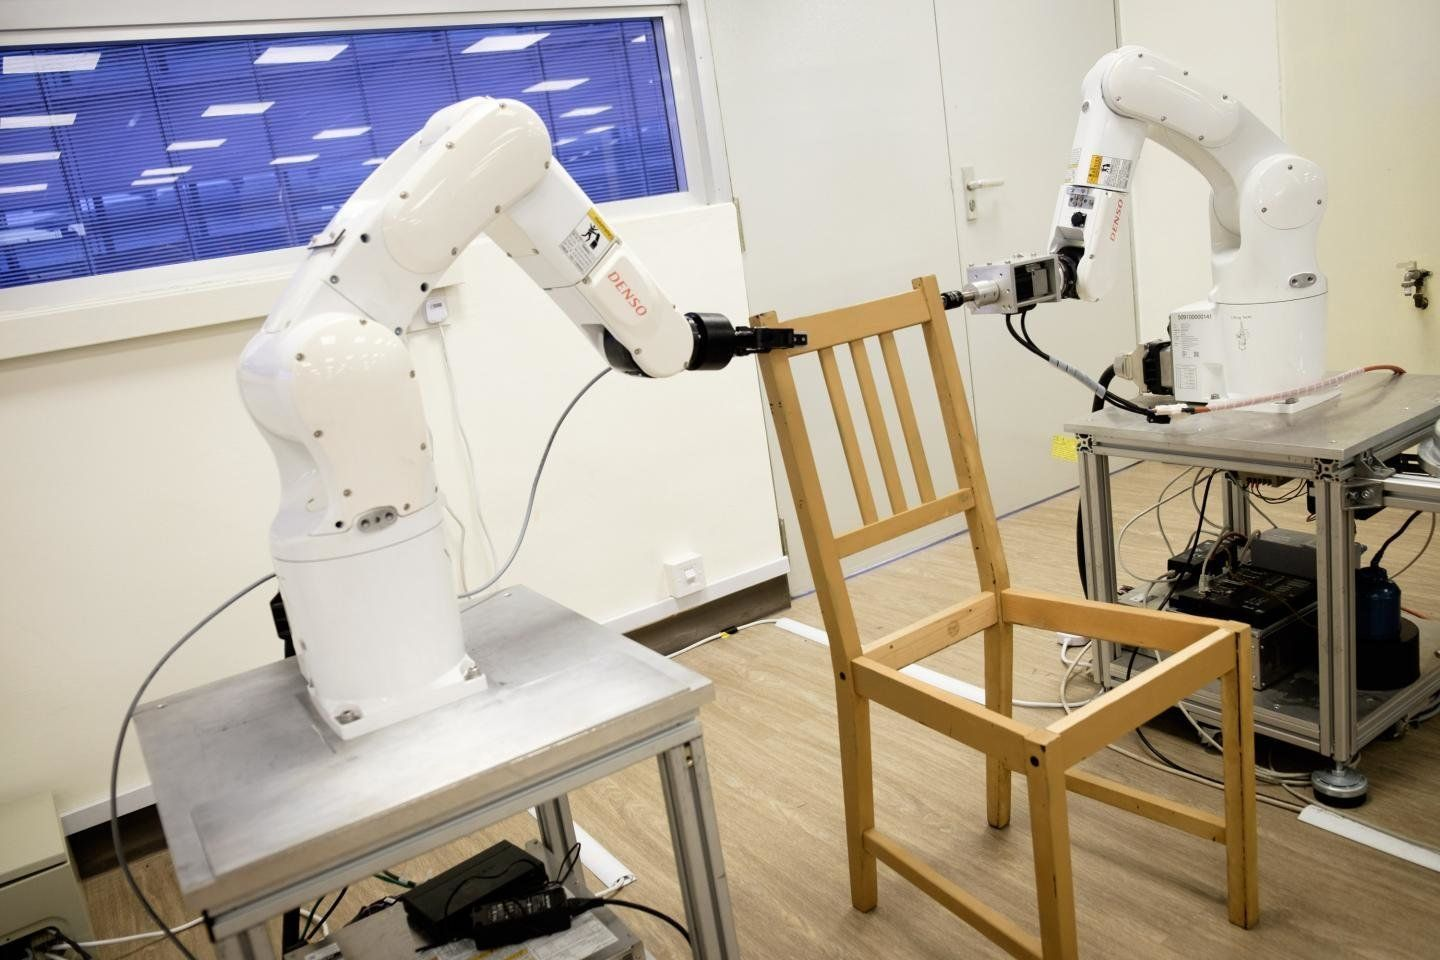 This Robot Has Accomplished The Impossible By Building An Ikea